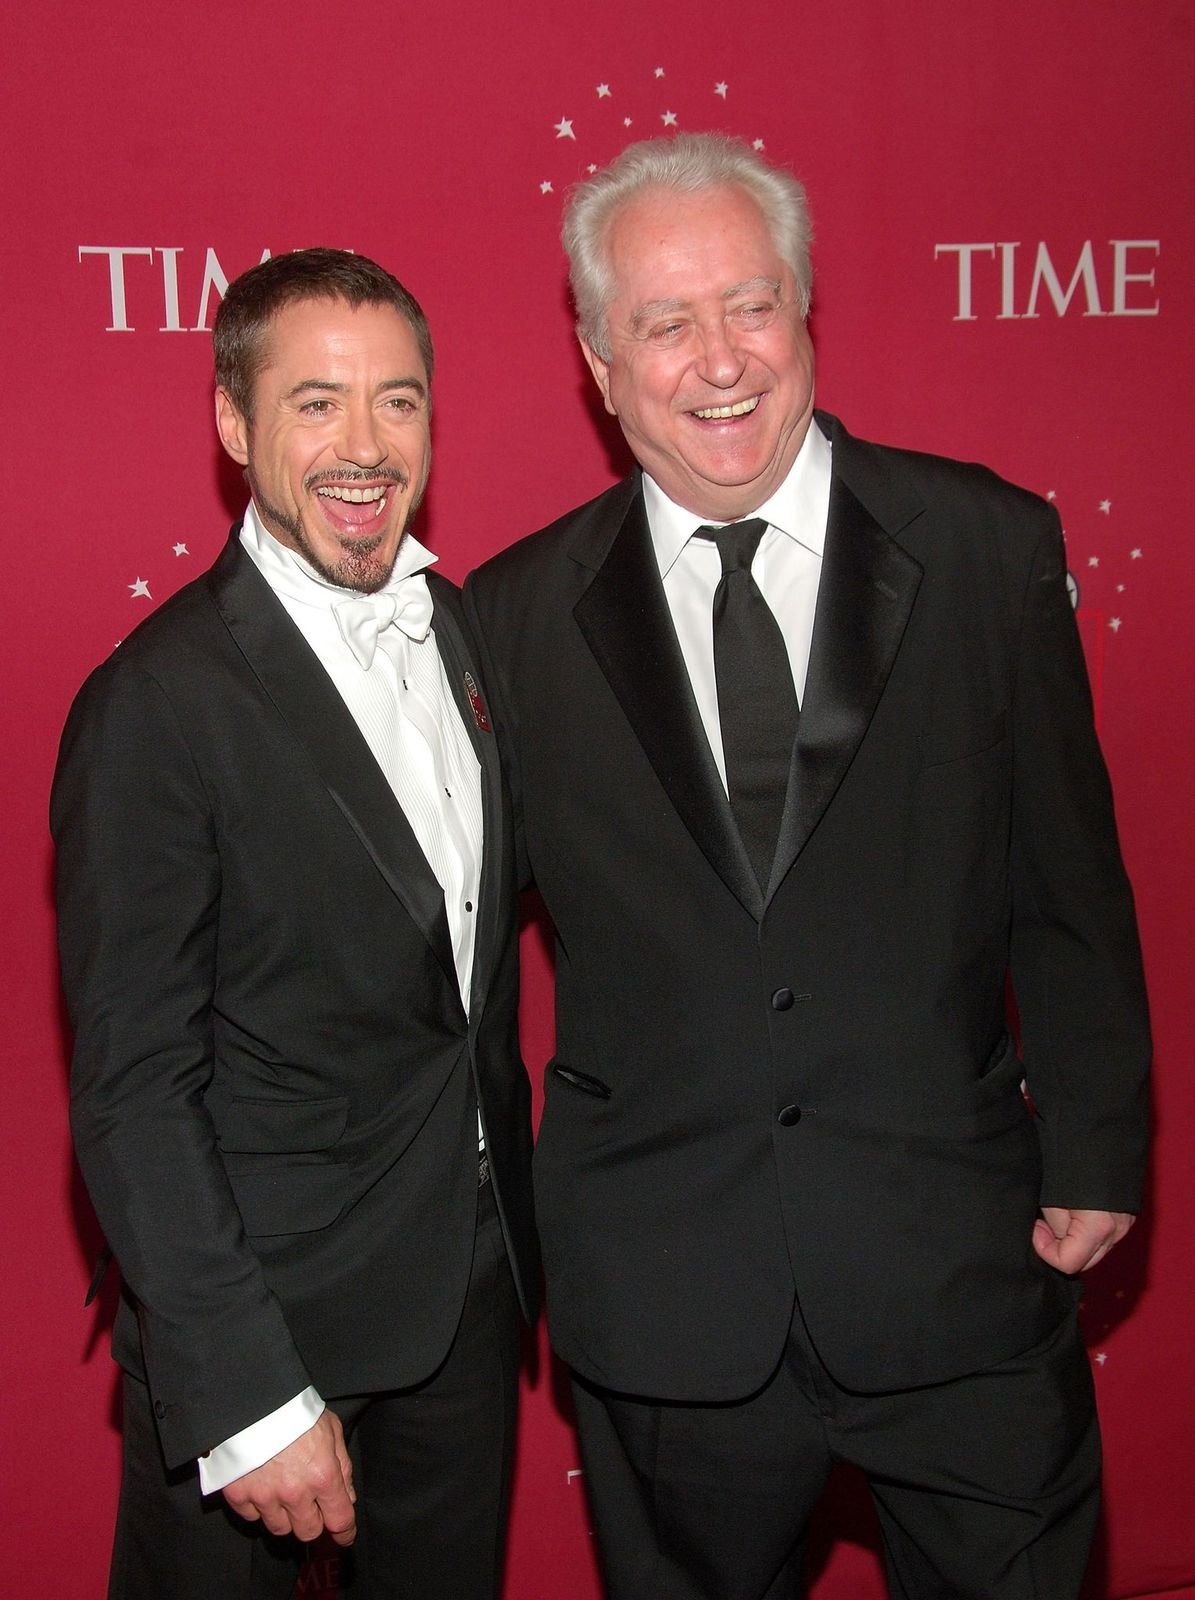 """Robert Downey Jr. and Robert Downey Sr. at Time's """"100 Most Influential People In The World"""" Gala at Jazz at Lincoln Center in New York City on May 8, 2008.   Photo: Getty Images"""